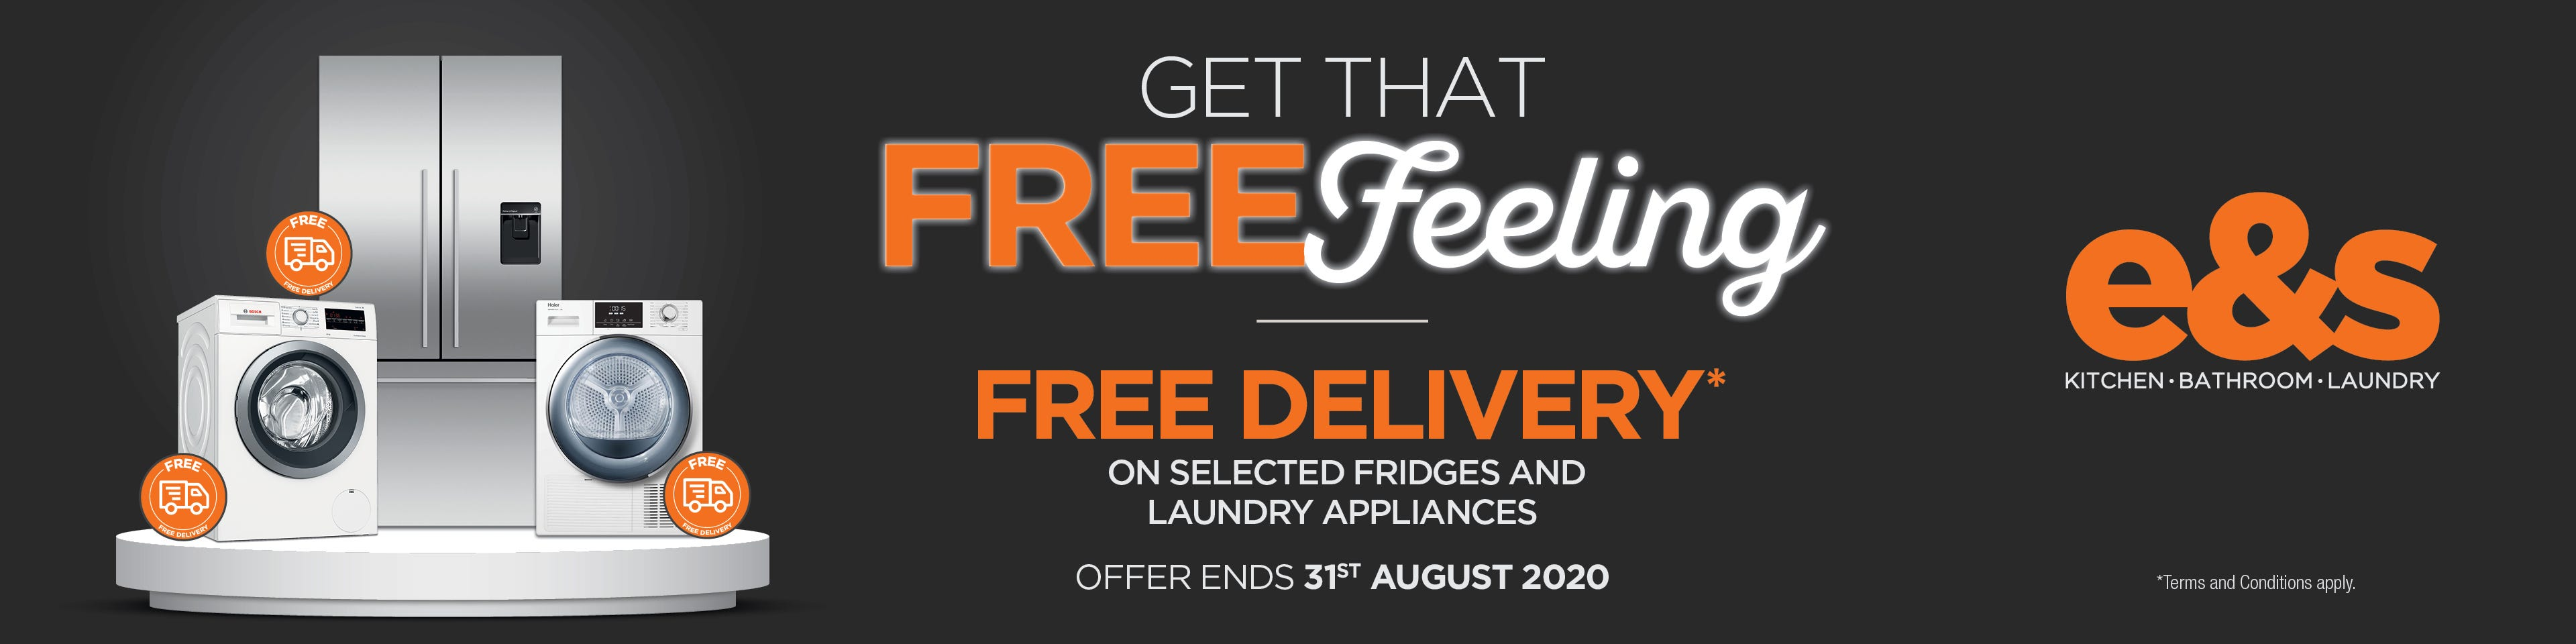 Get that FREE Feeling - Free delivery on selected fridges & laundry appliances. Conditions apply  - ENDS 31/08/20